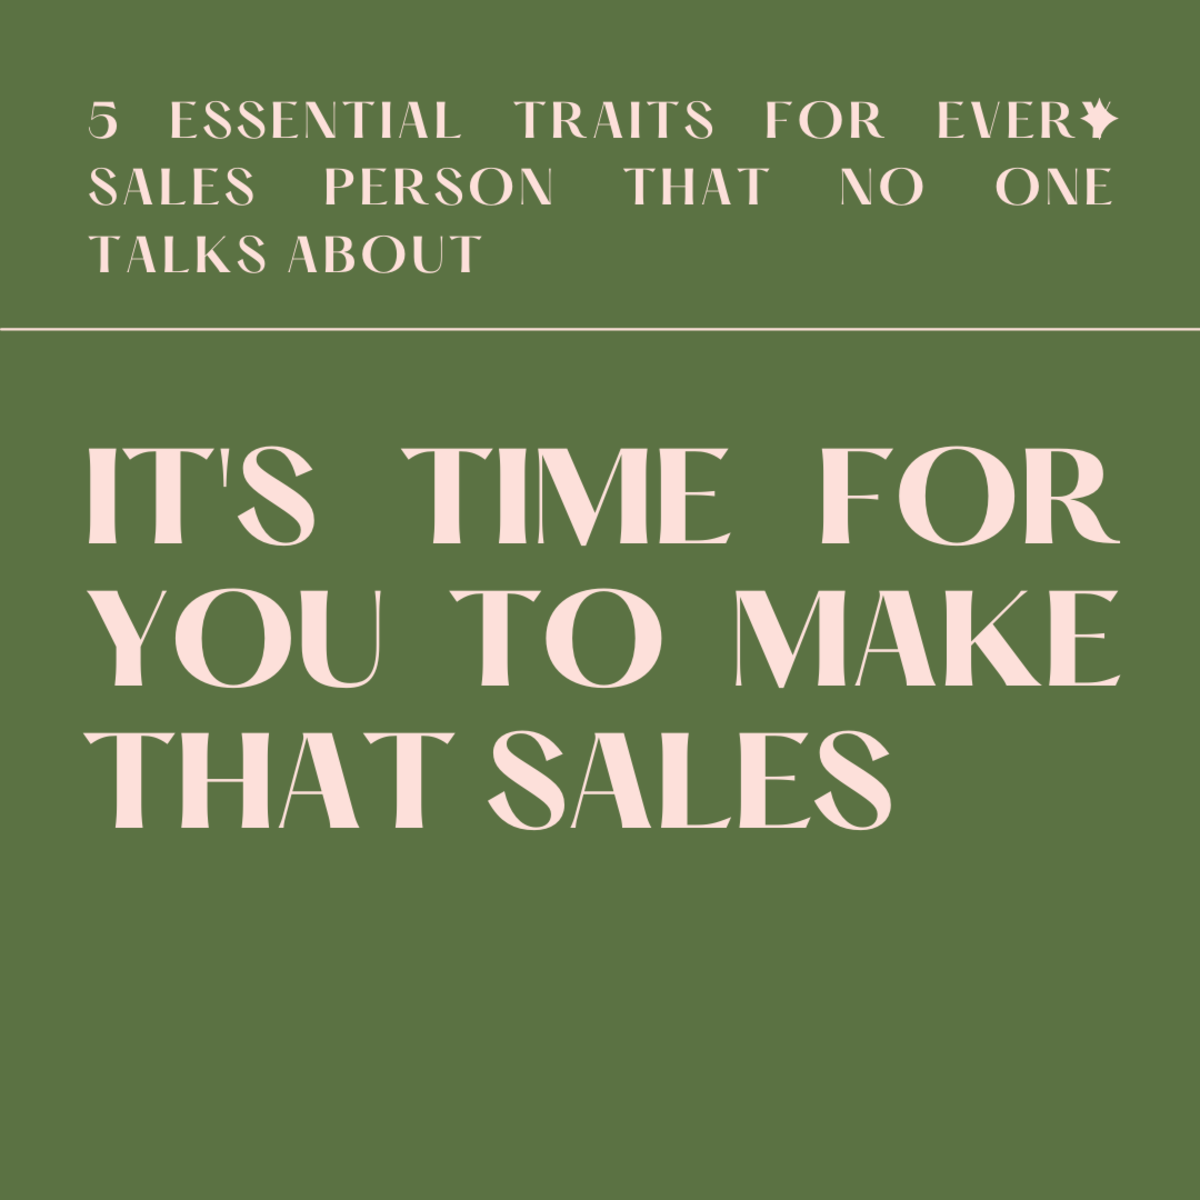 5 Essential Traits for Every Sales Person That No One Talks About